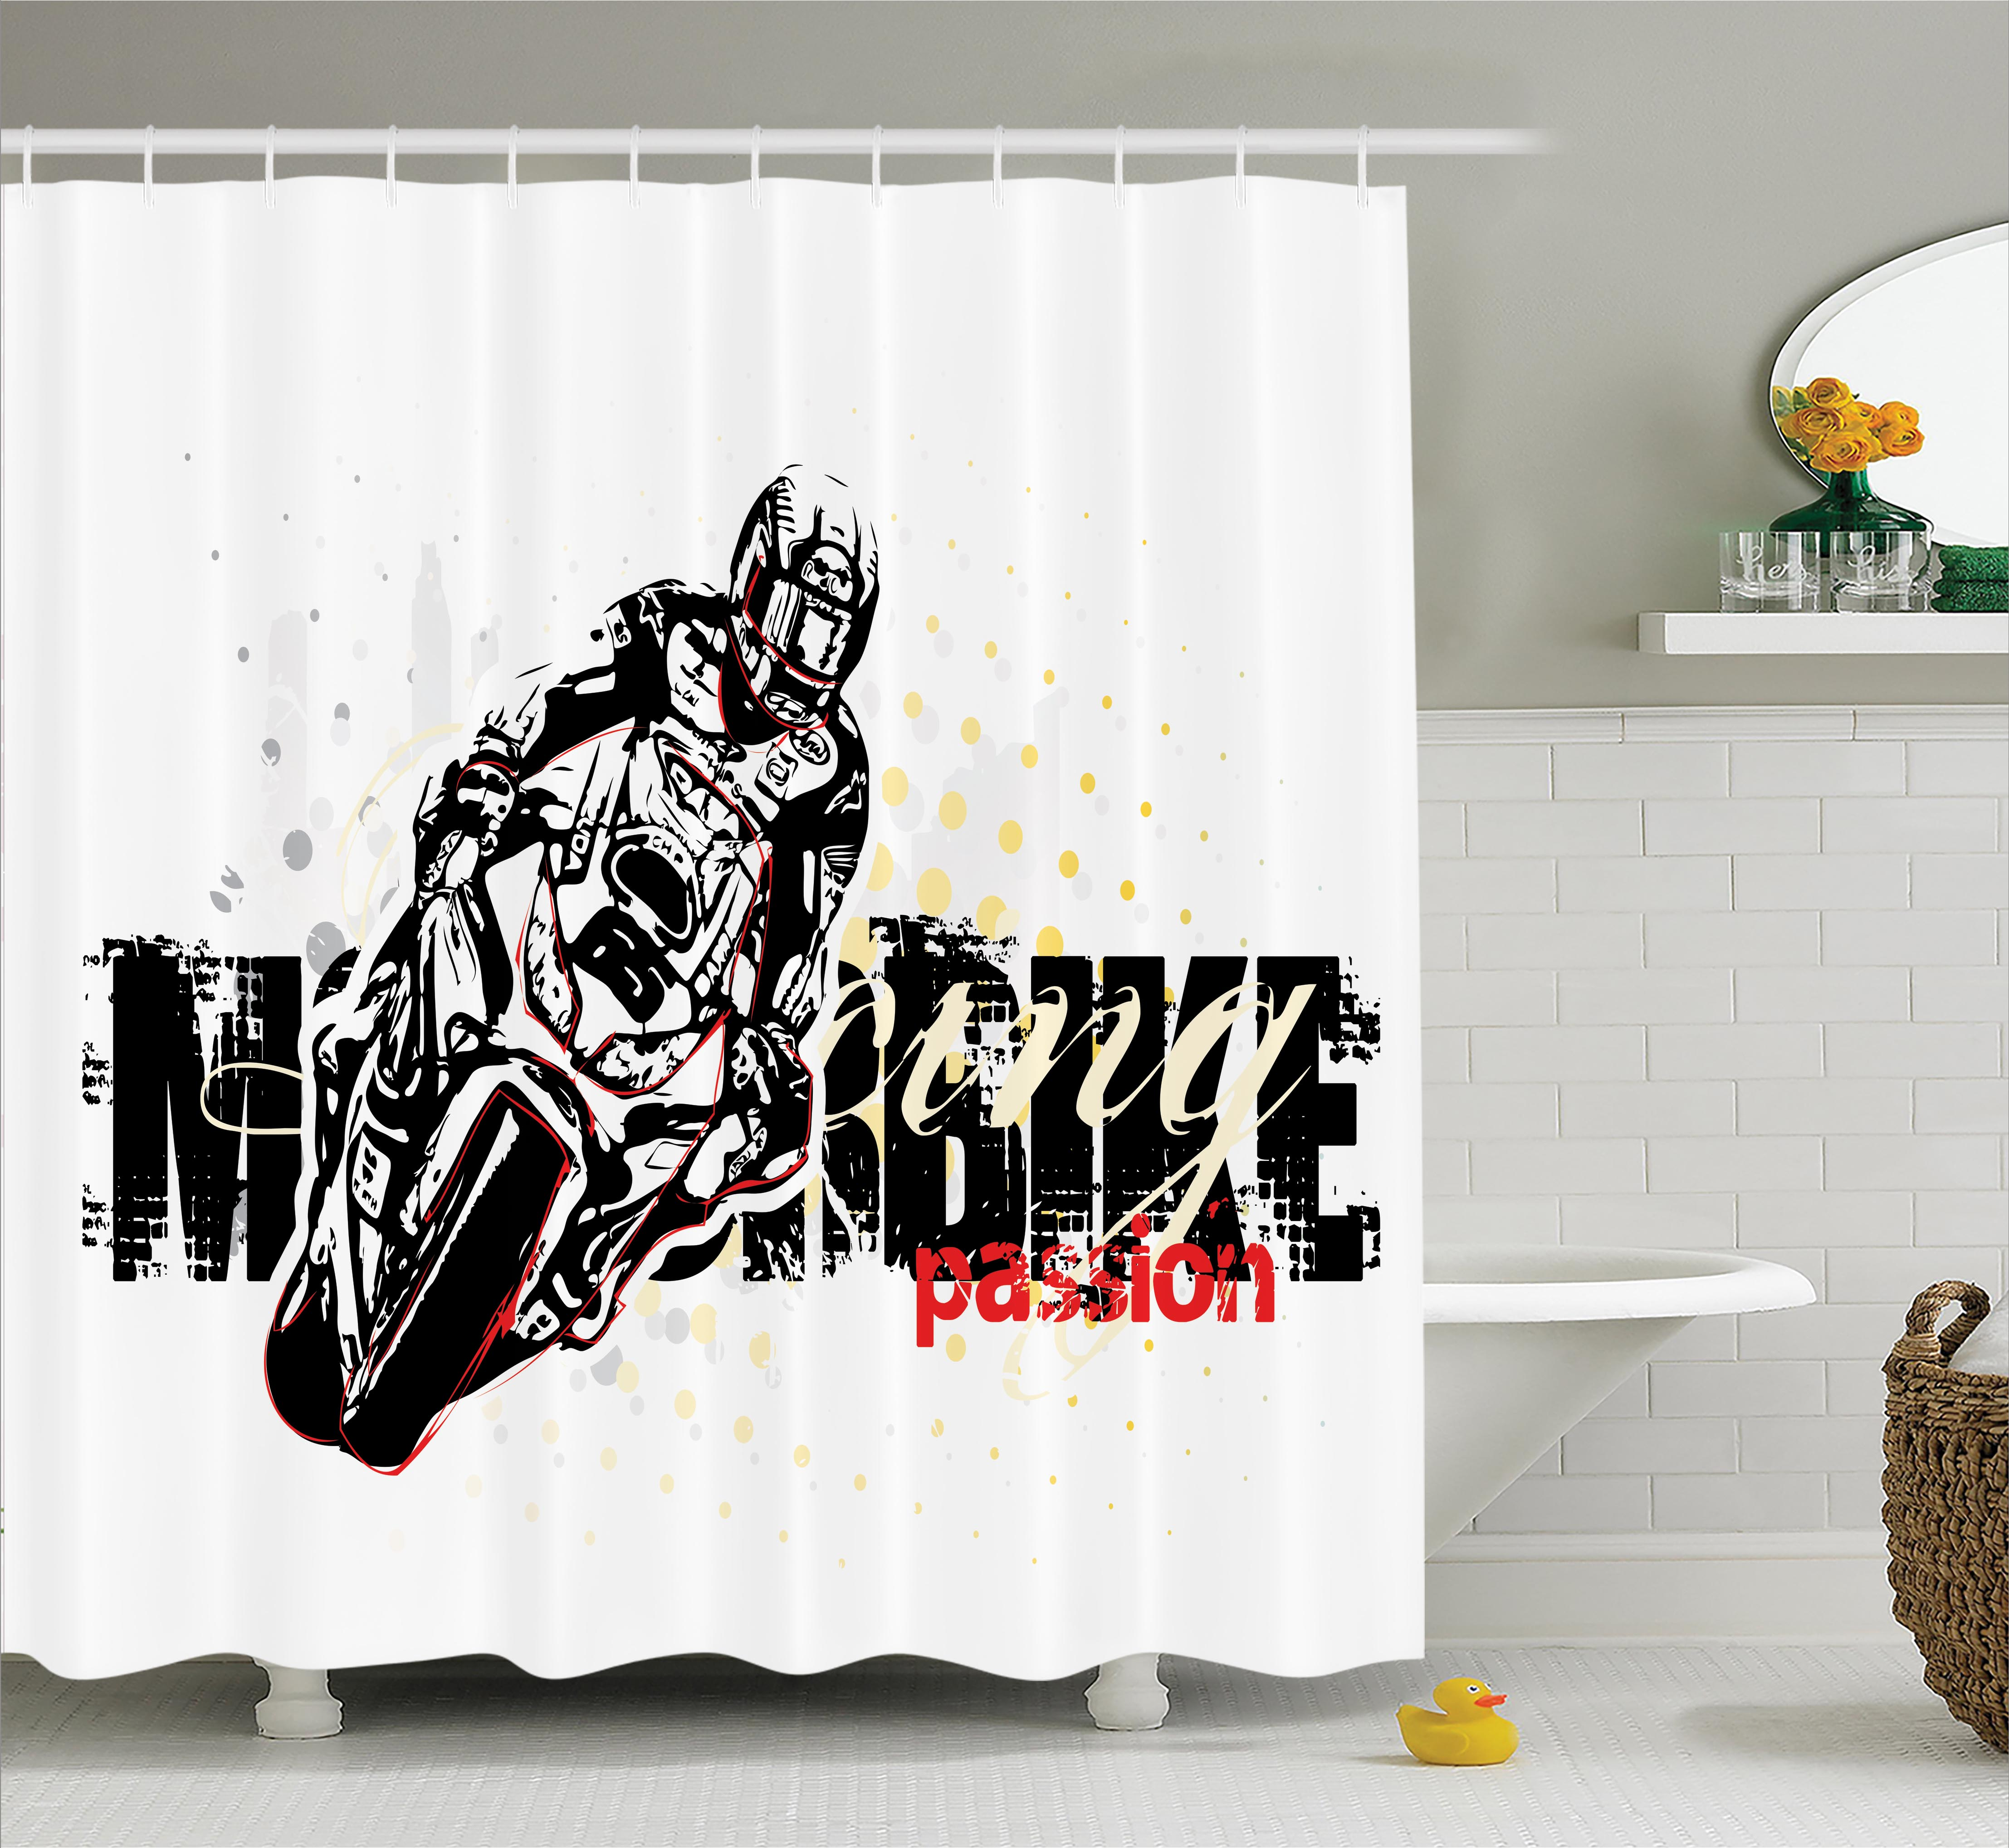 Motorcycle Shower Curtain Set, Motorbike Illustration On Doted Grungy  Background Super Bike Passion Silhouette, Bathroom Decor, Black Yellow, By  Ambesonne